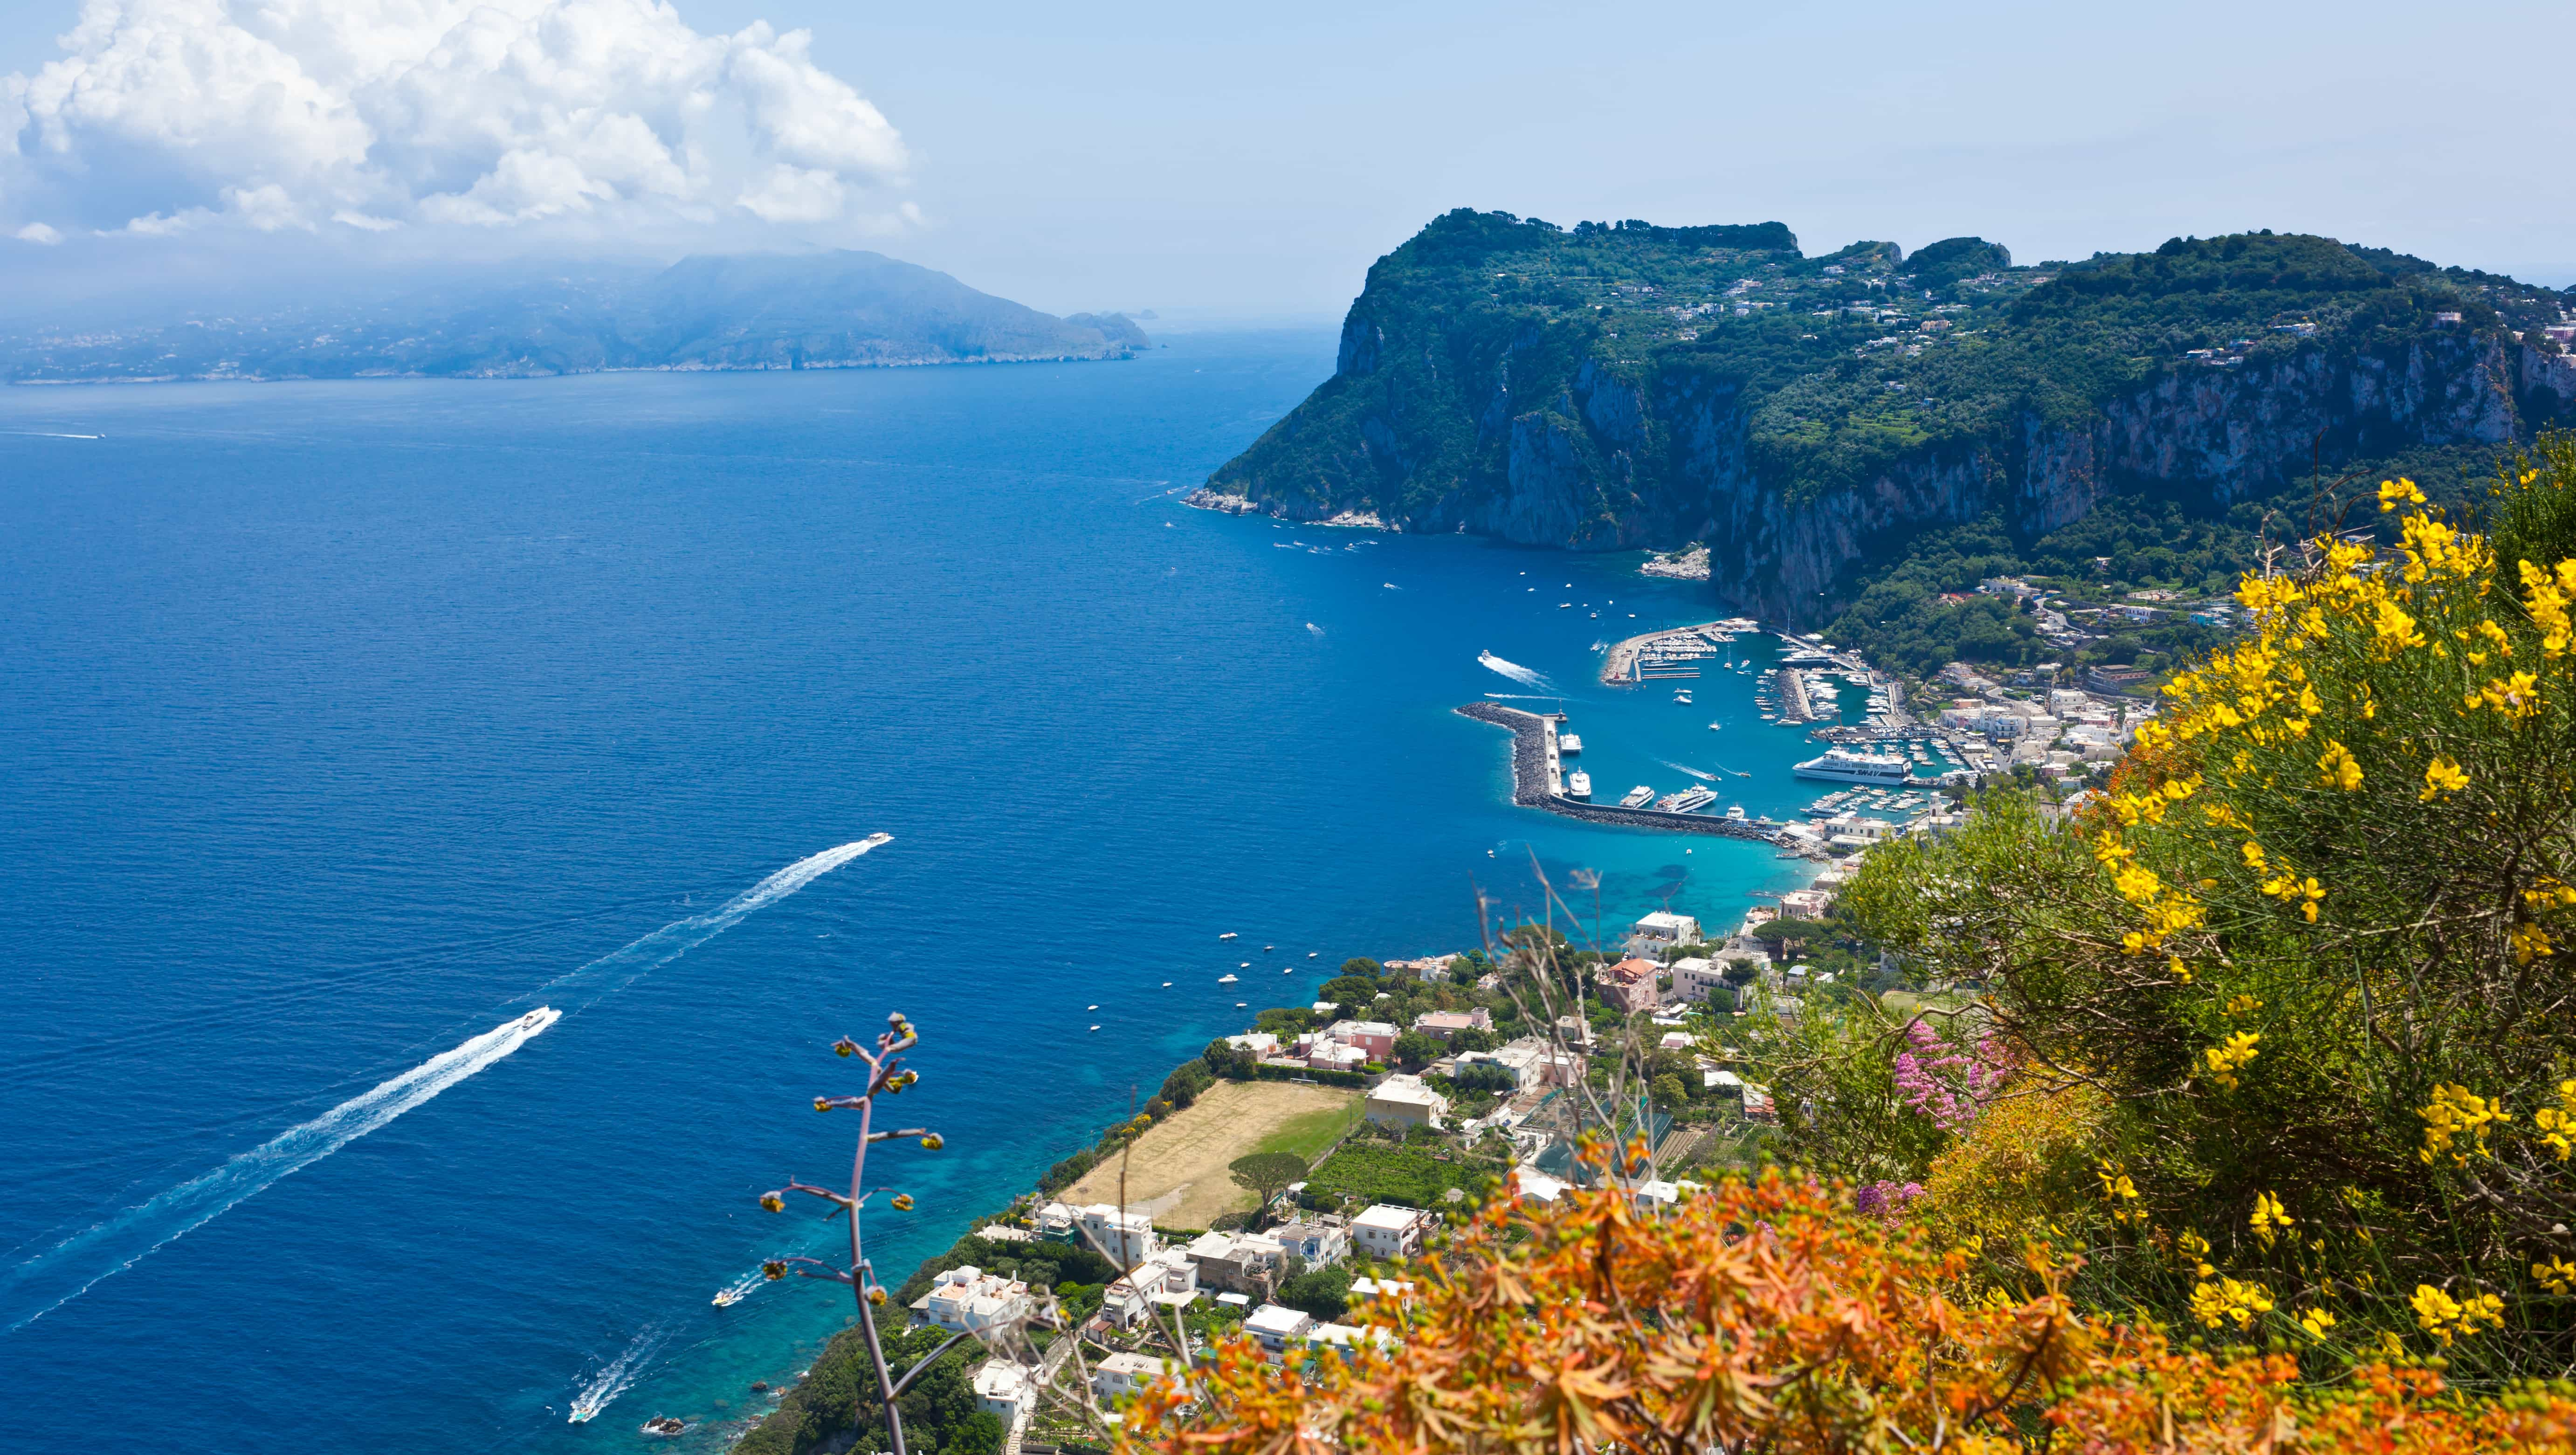 Bird's eye view of yachts sailing just off Italy's coast heading toward a small marina at the foot of a mountain